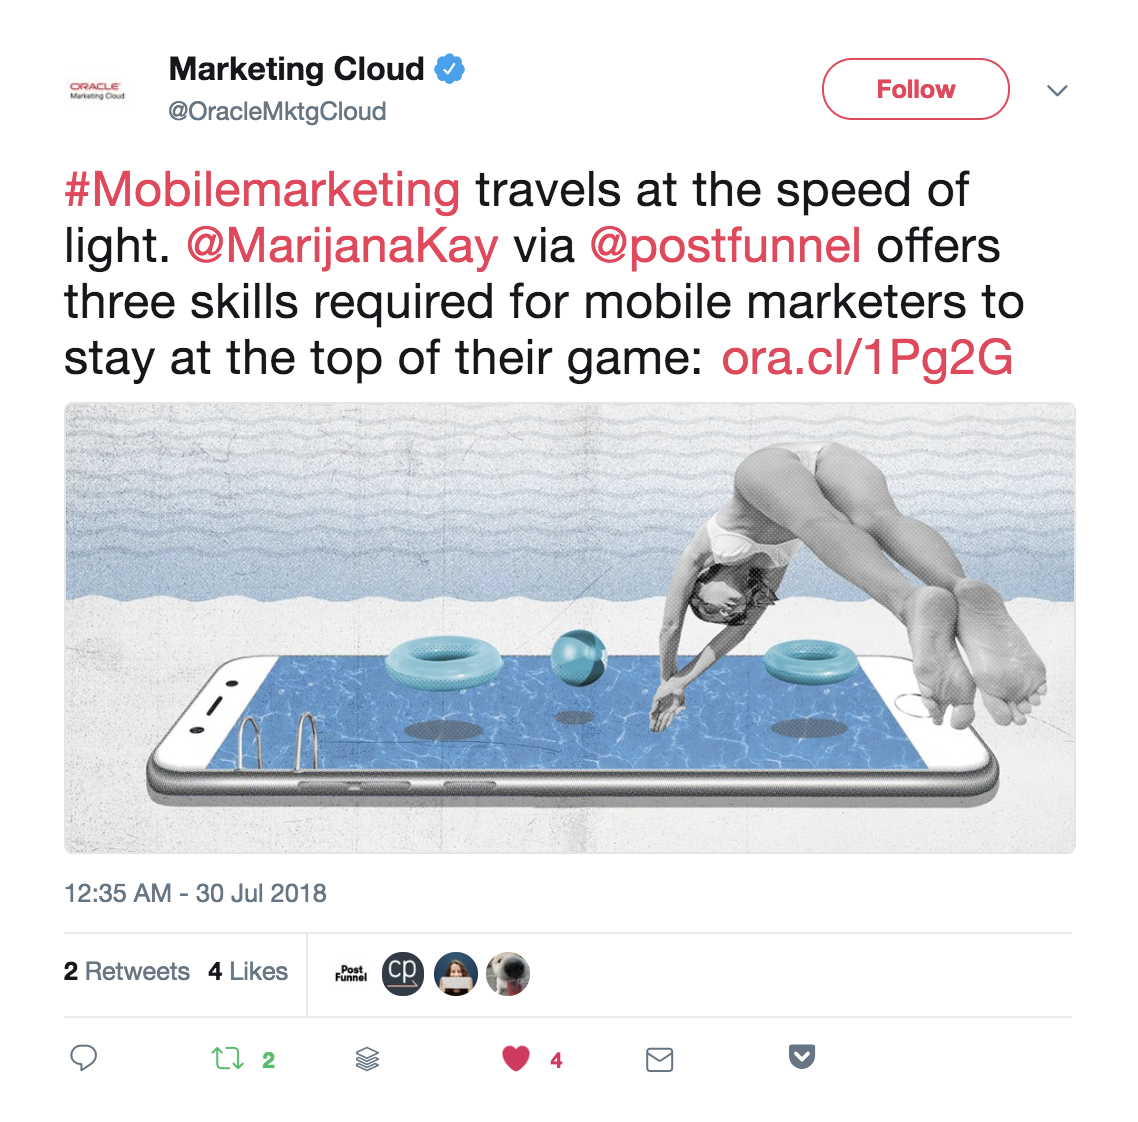 Oracle Marketing Cloud curating content on their Twitter feed